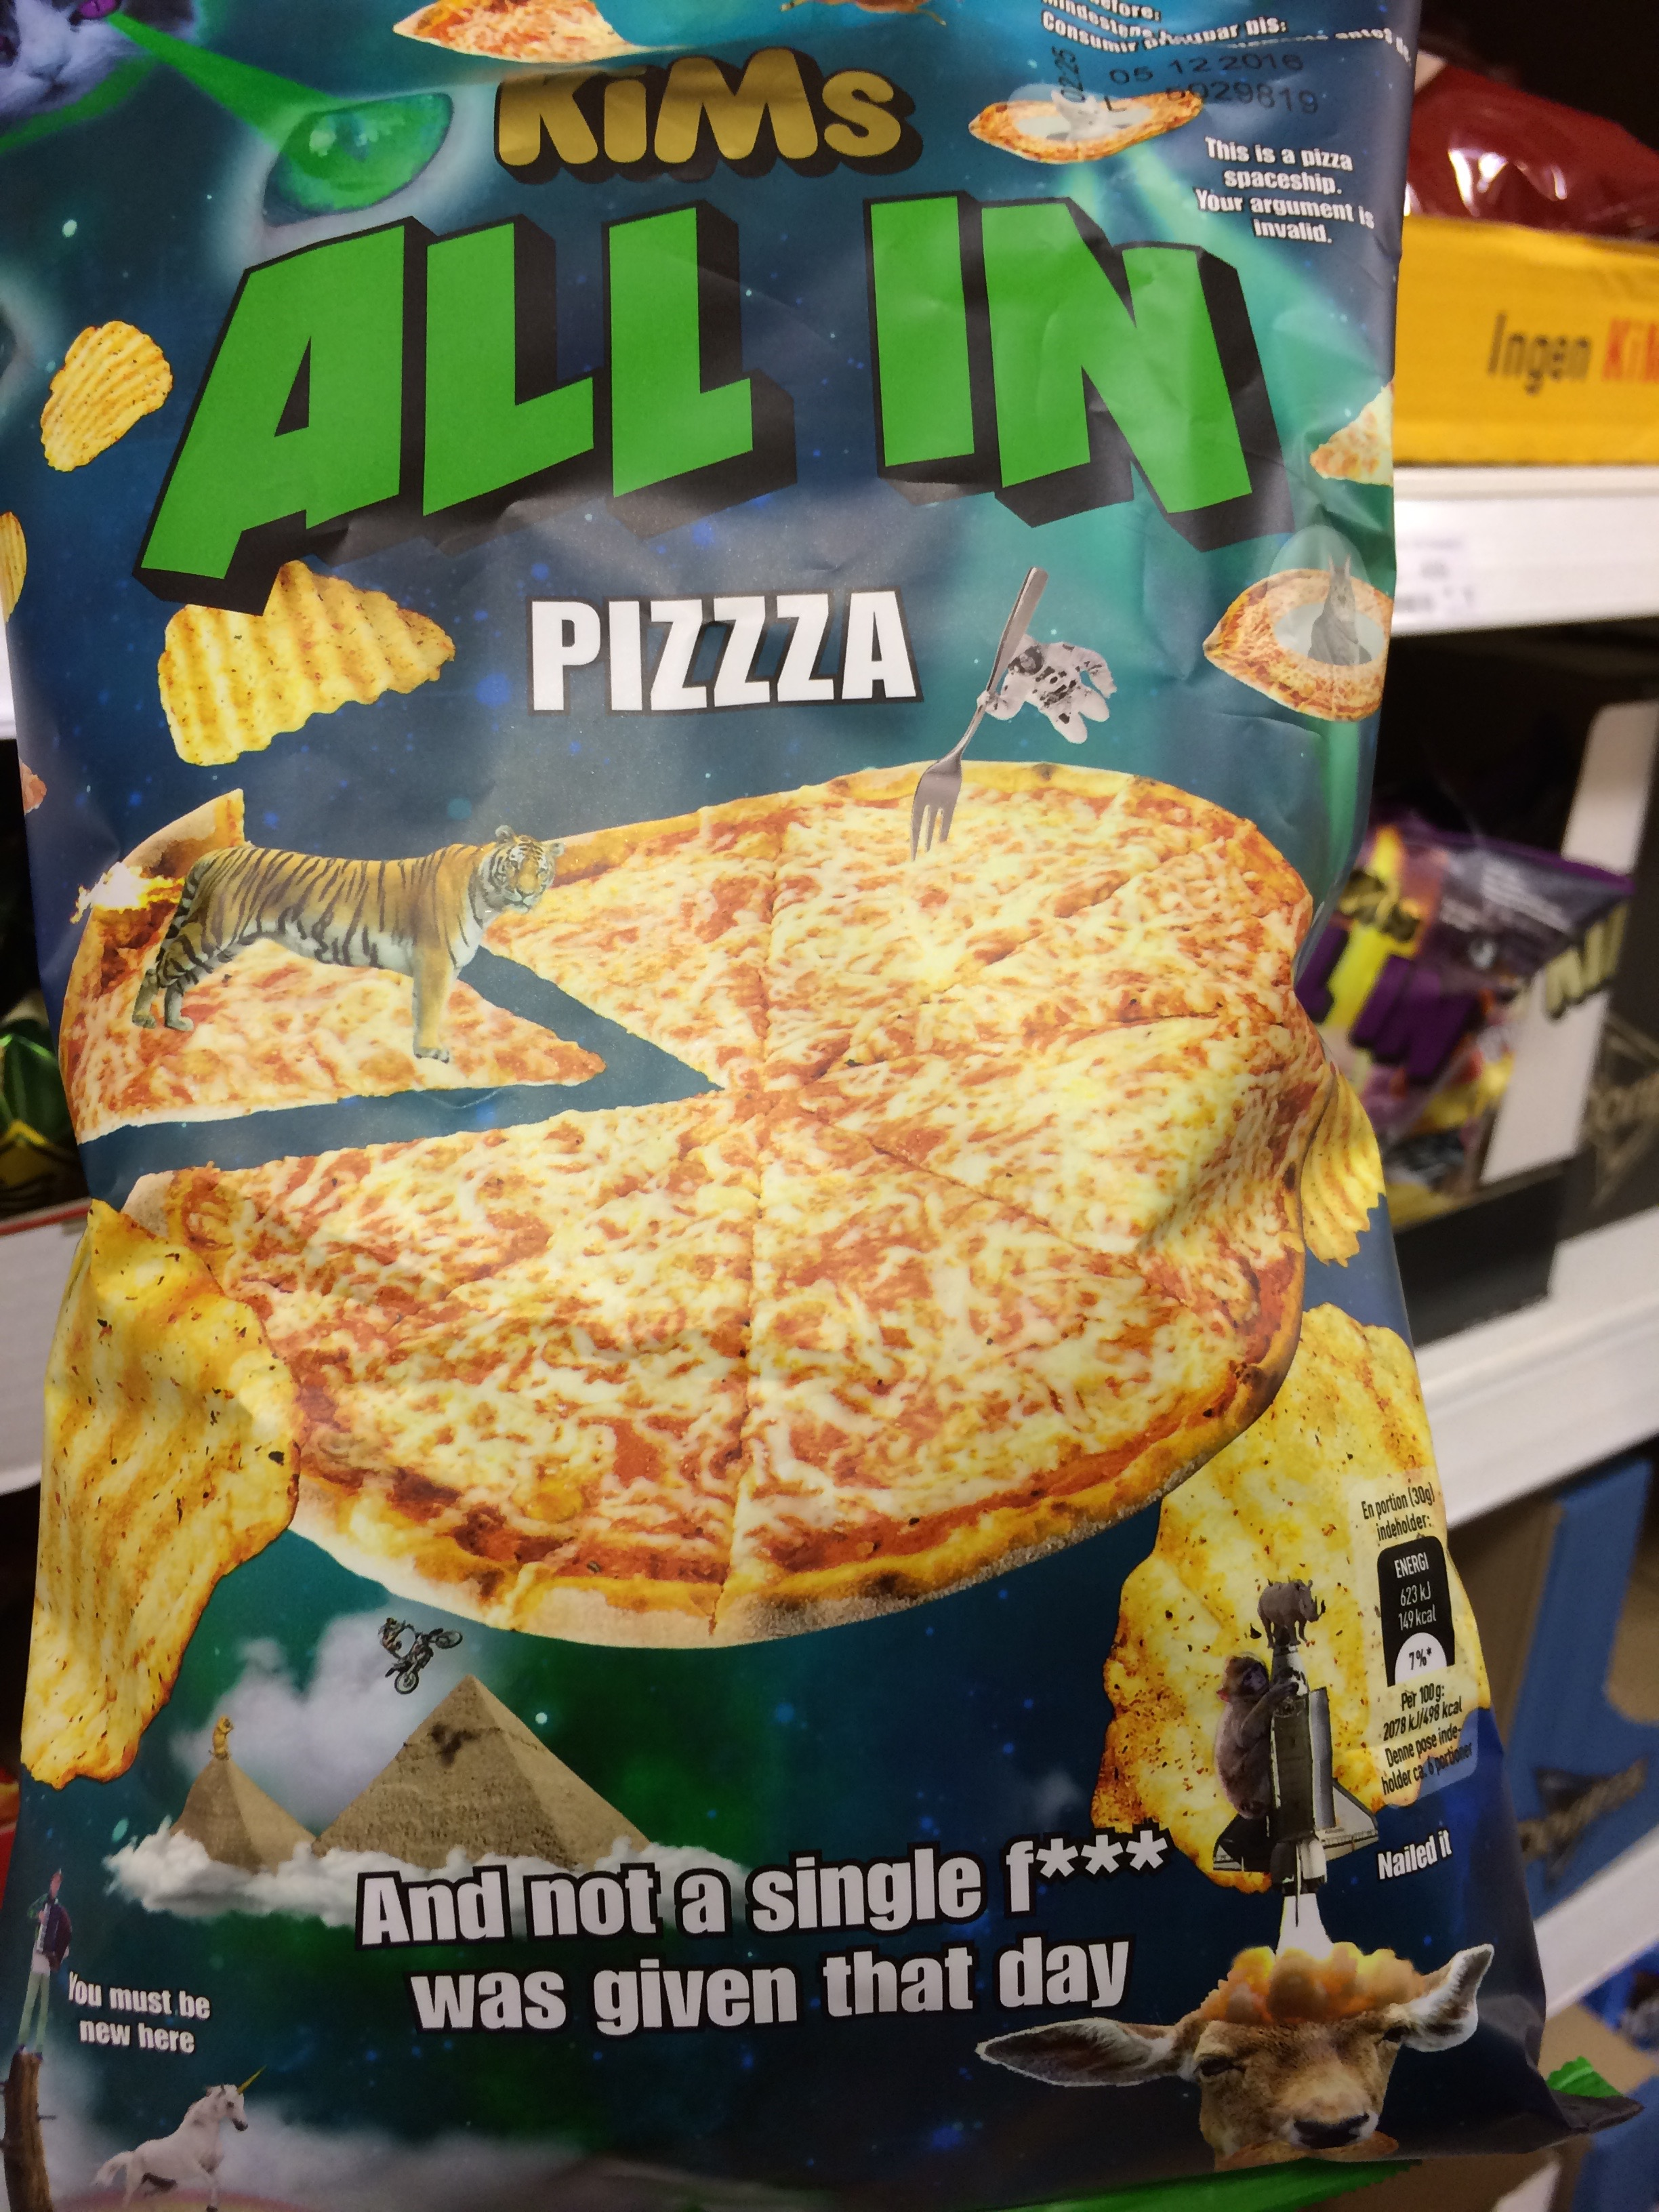 kims pizza chips